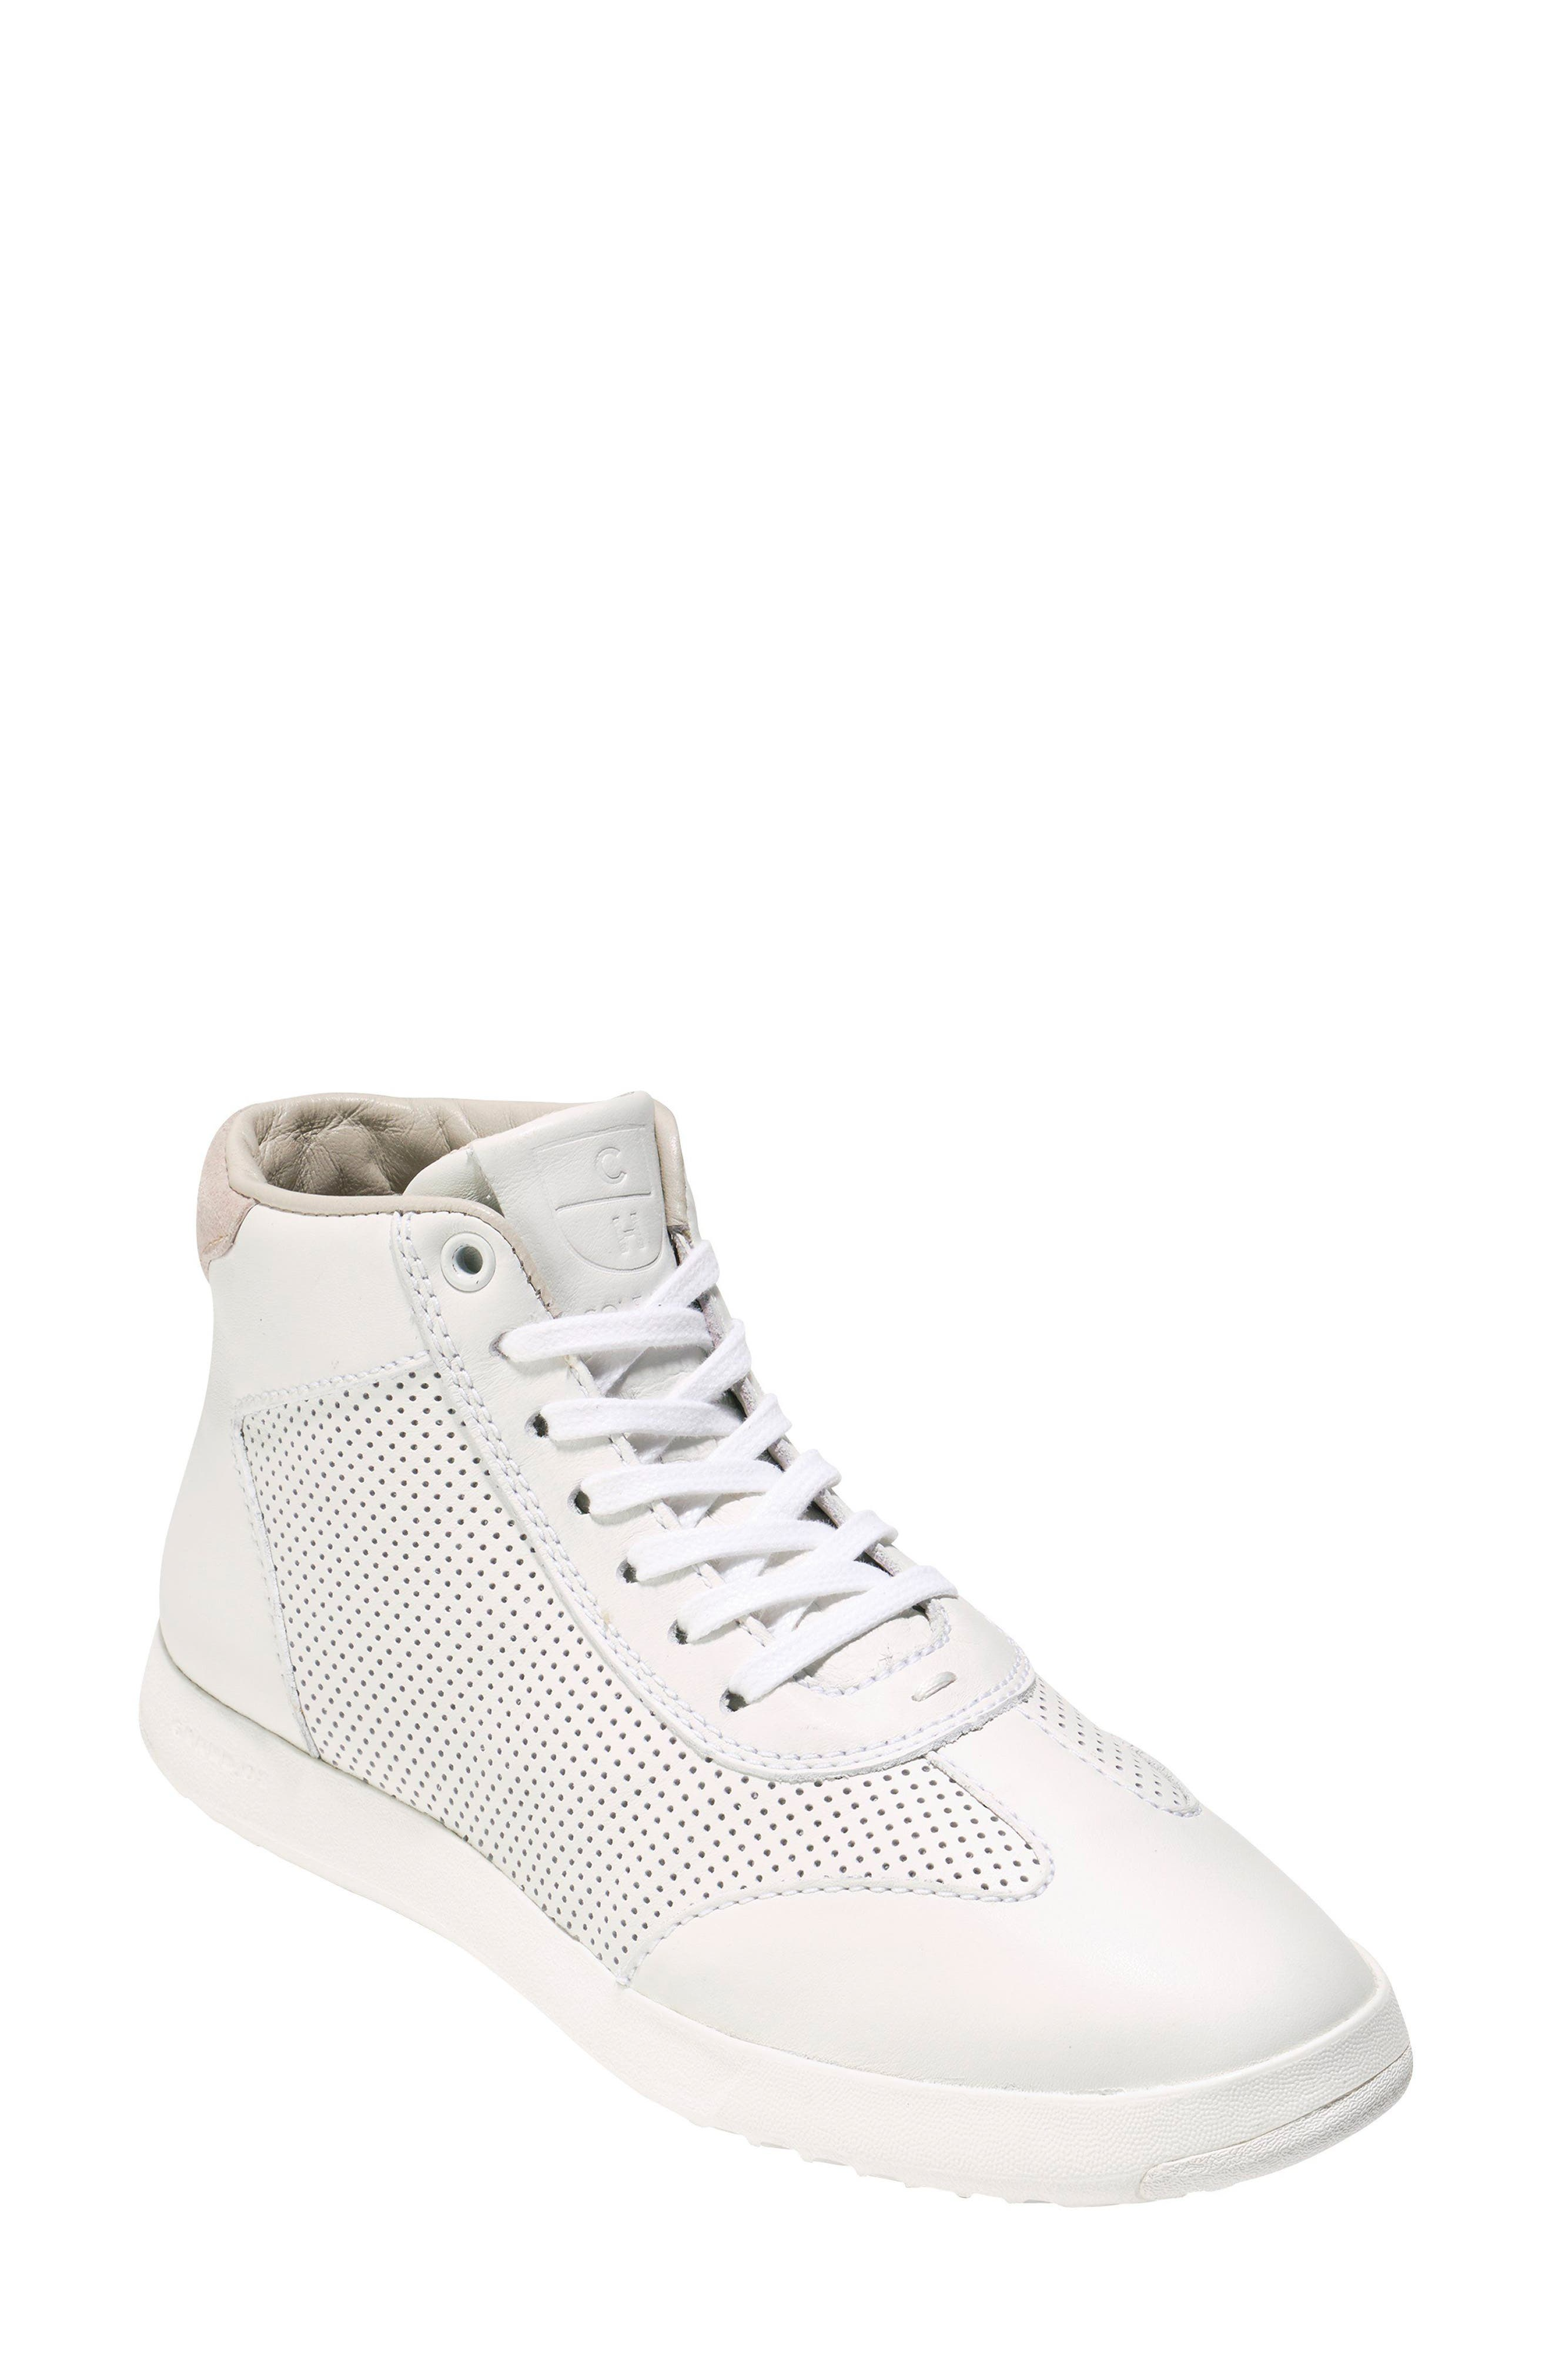 Main Image - Cole Haan Grandpro High Top Sneaker (Women)